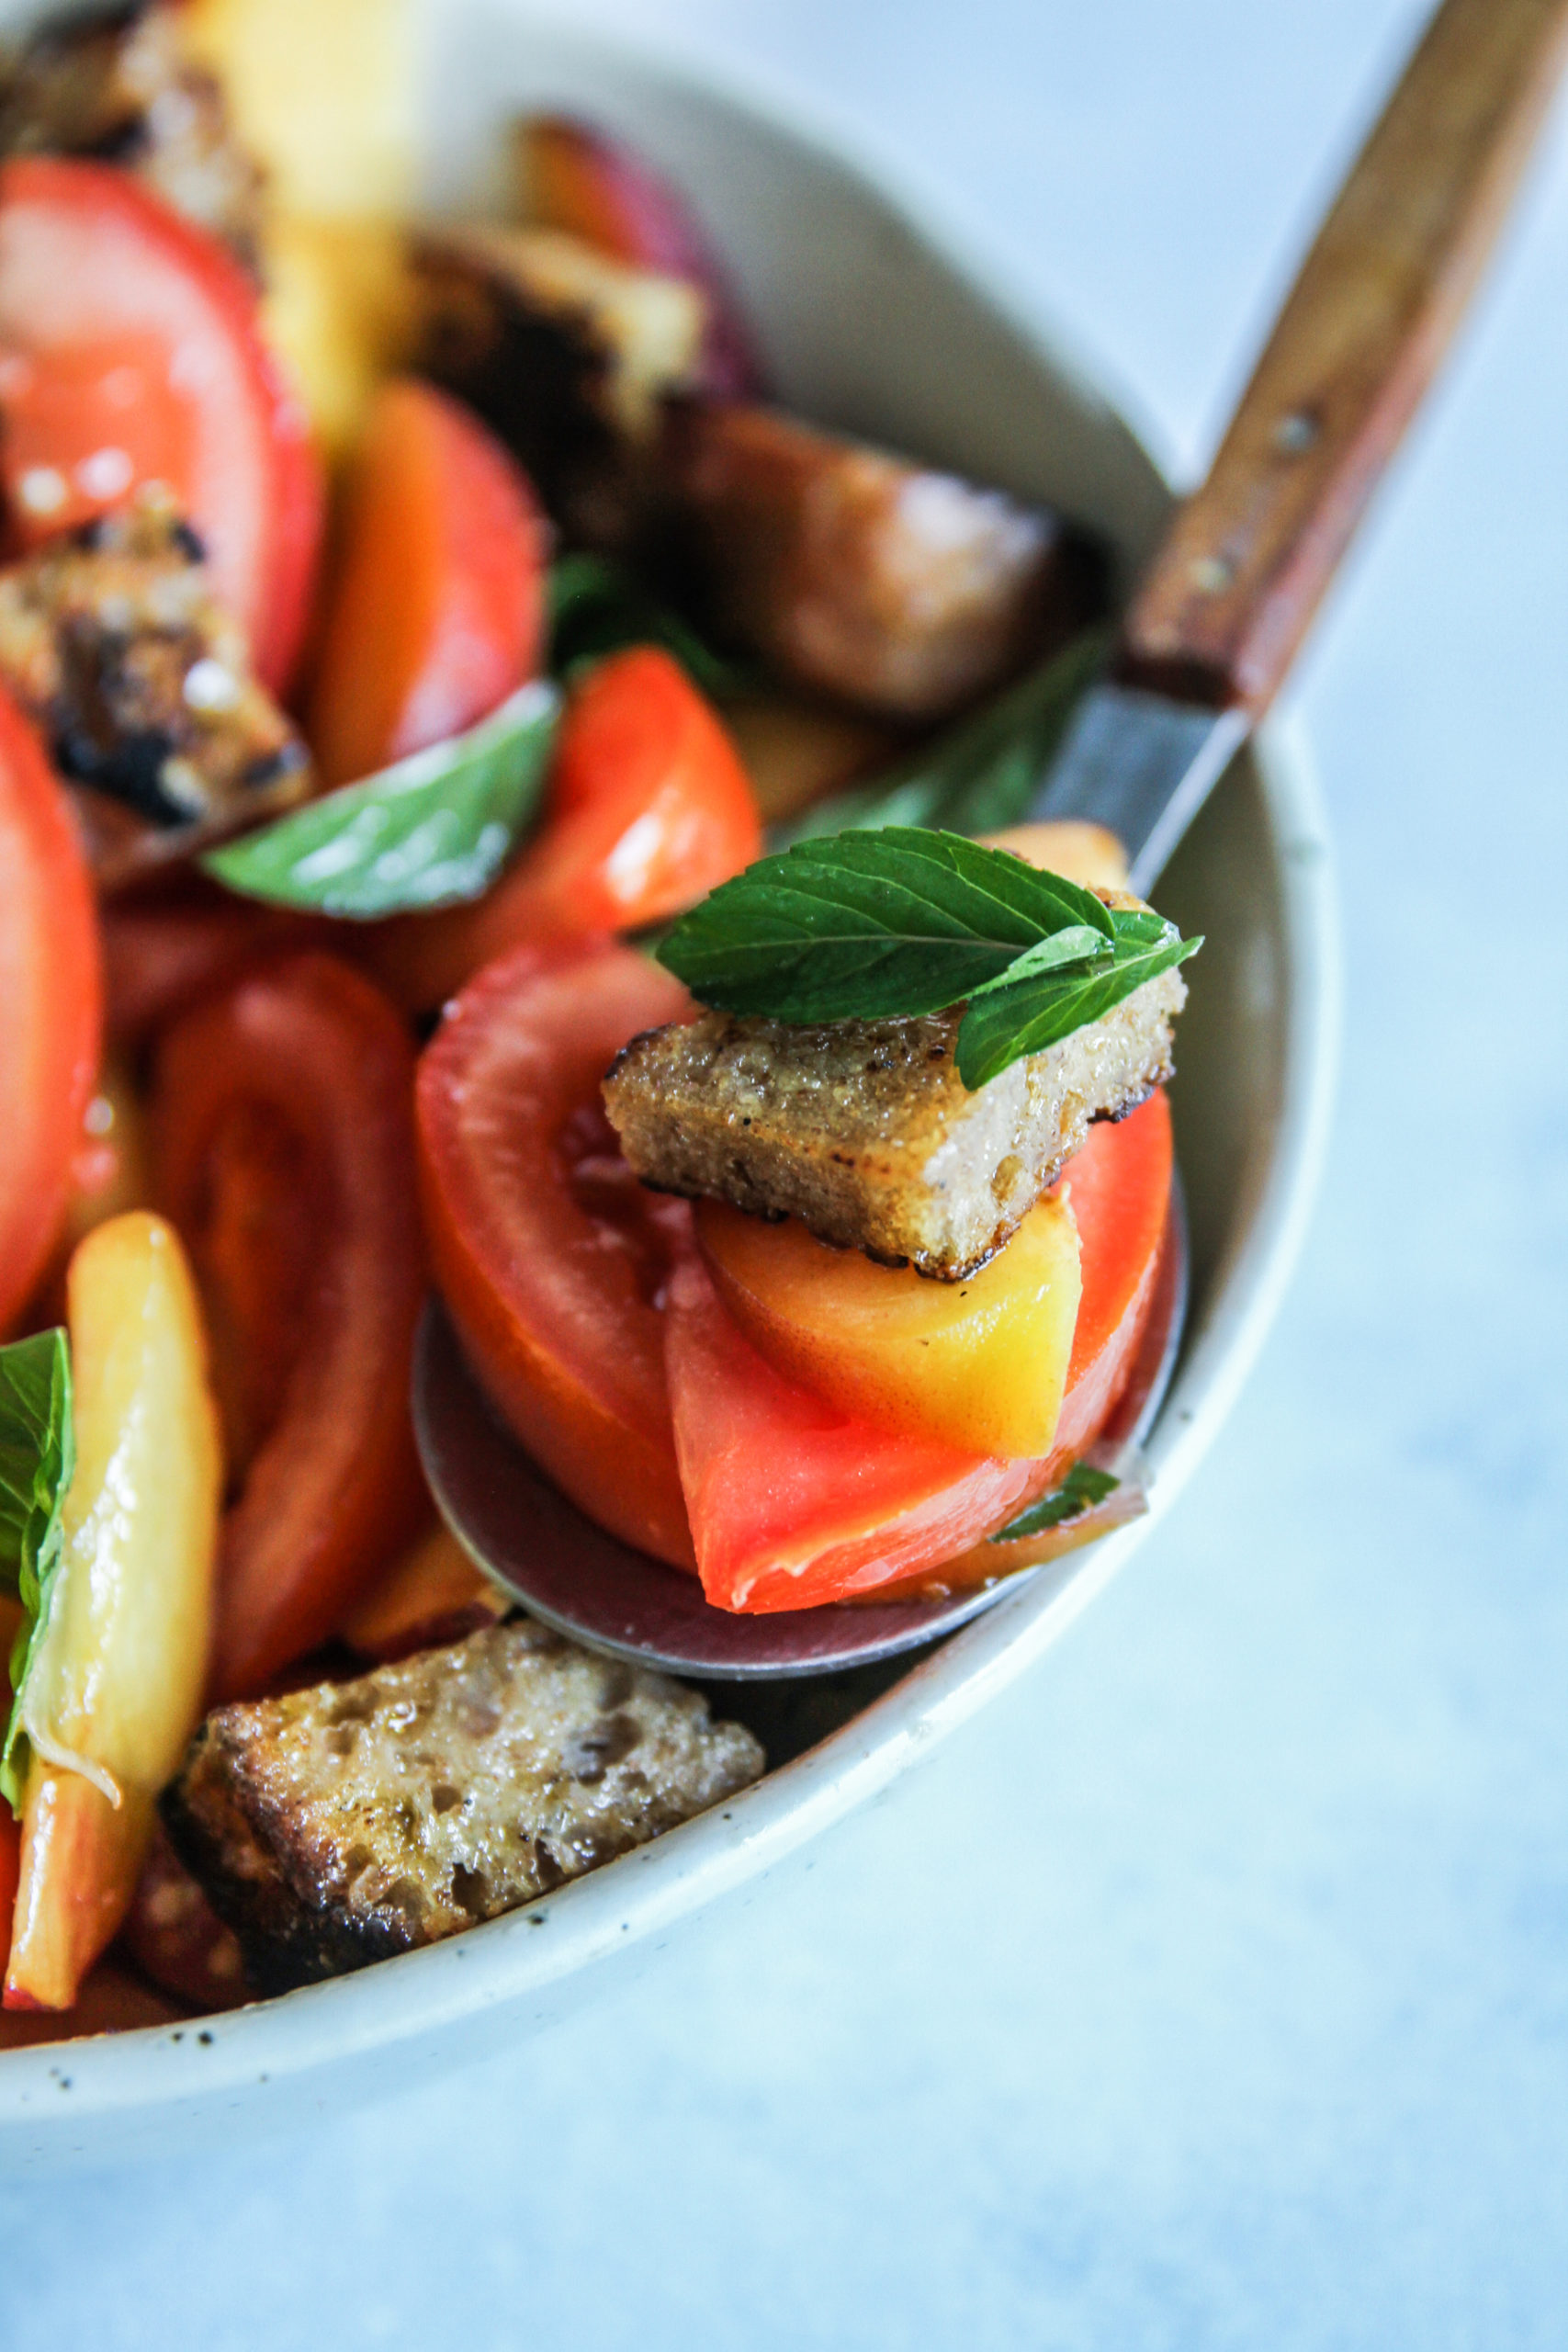 The best salad with peaces, tomatoes and sourdough croutons